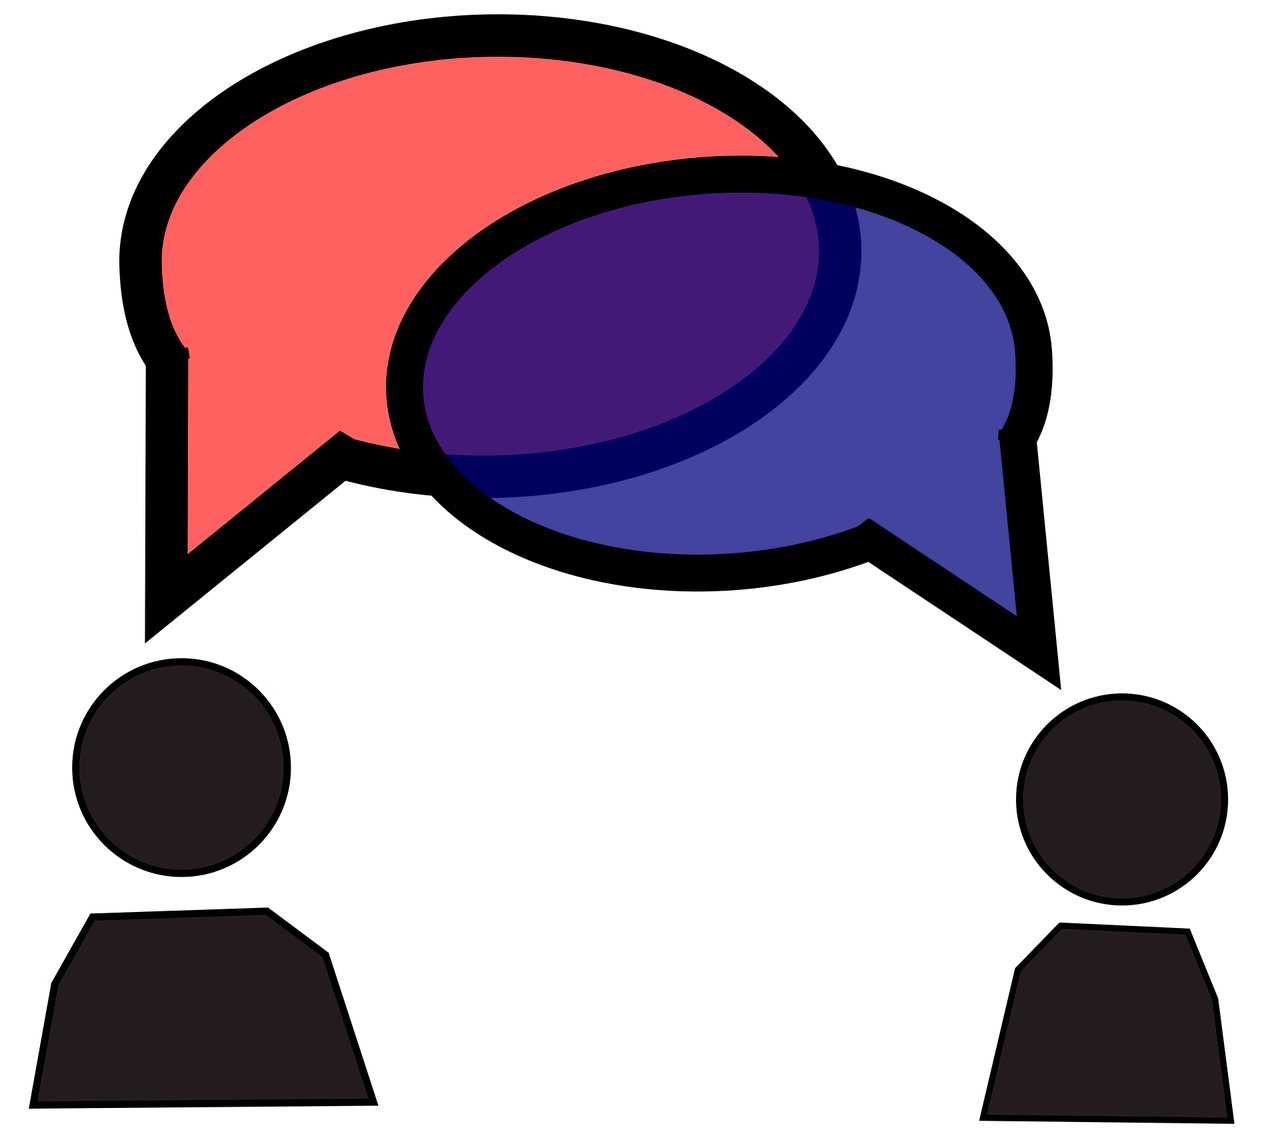 Counseling clipart difficult conversation. Blog posts on your